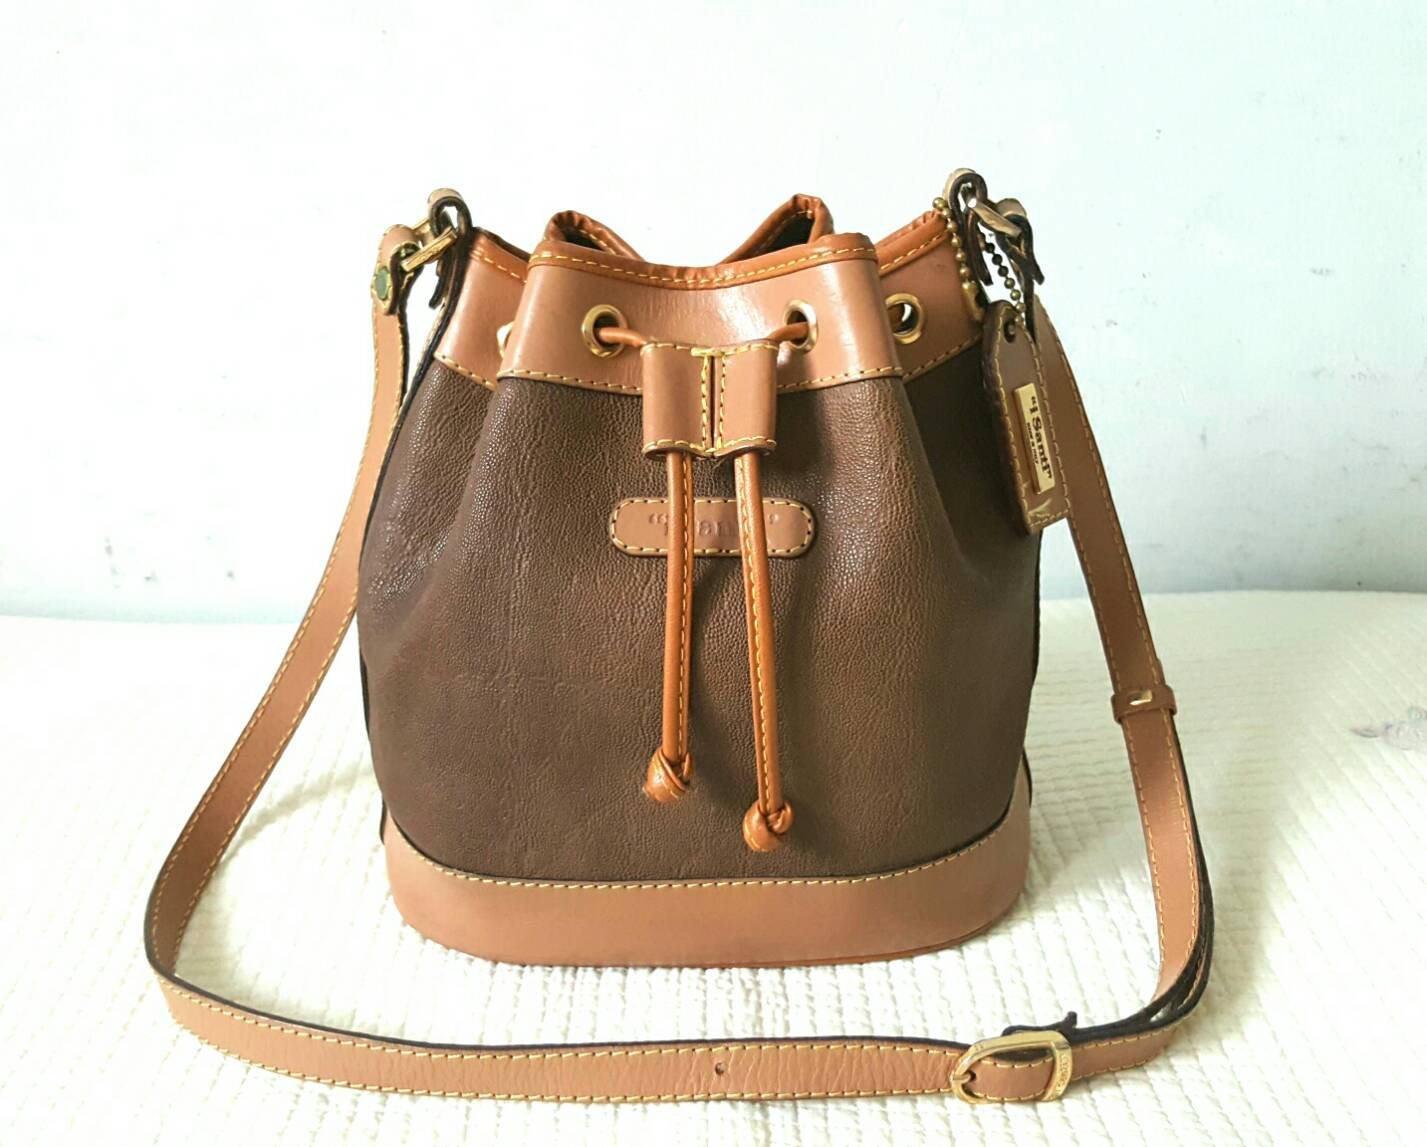 Whole Leather Bags Goods